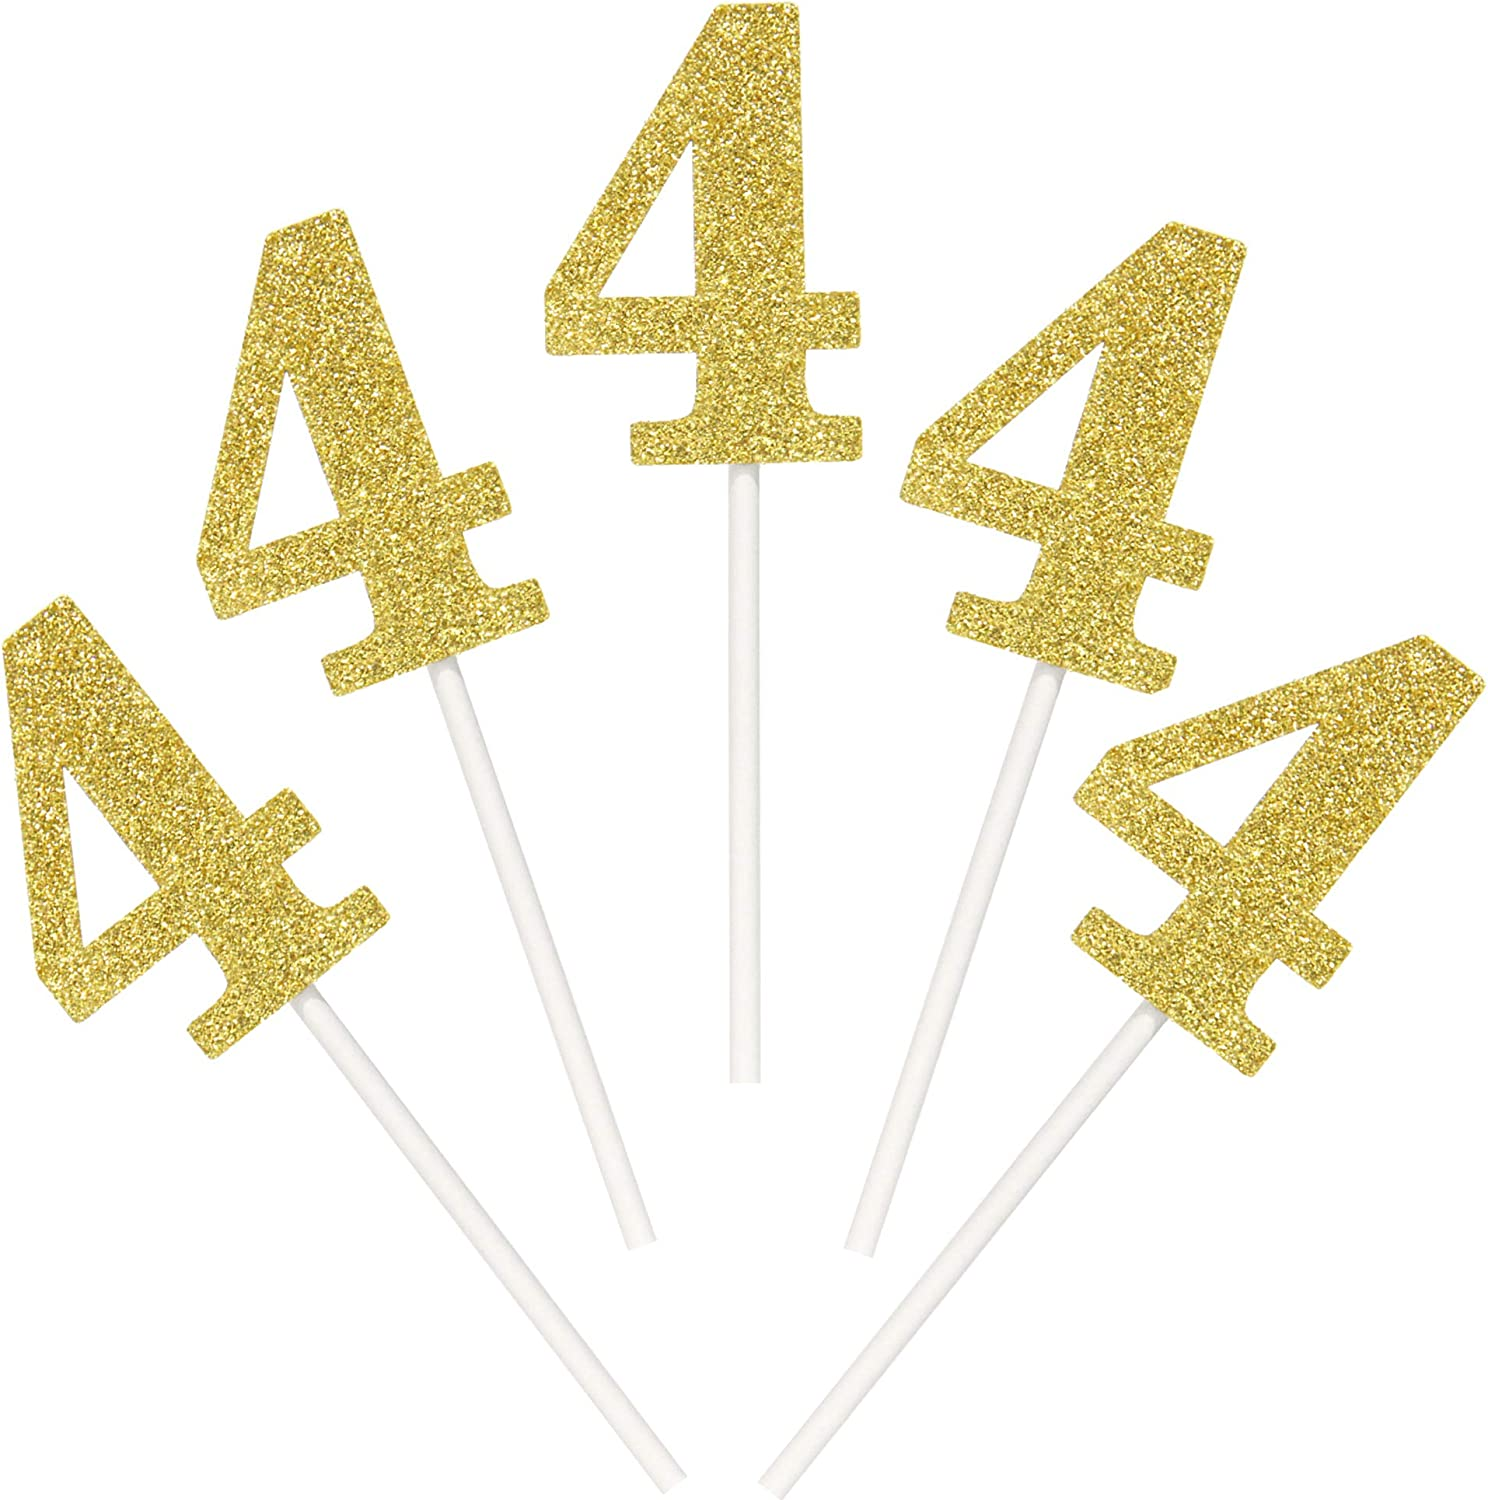 Pack of 48 Number 4 Cupcake Toppers 4th Birthday Cupcake Picks Anniversary Party Decor- Mixed Color Black Gold Silver)